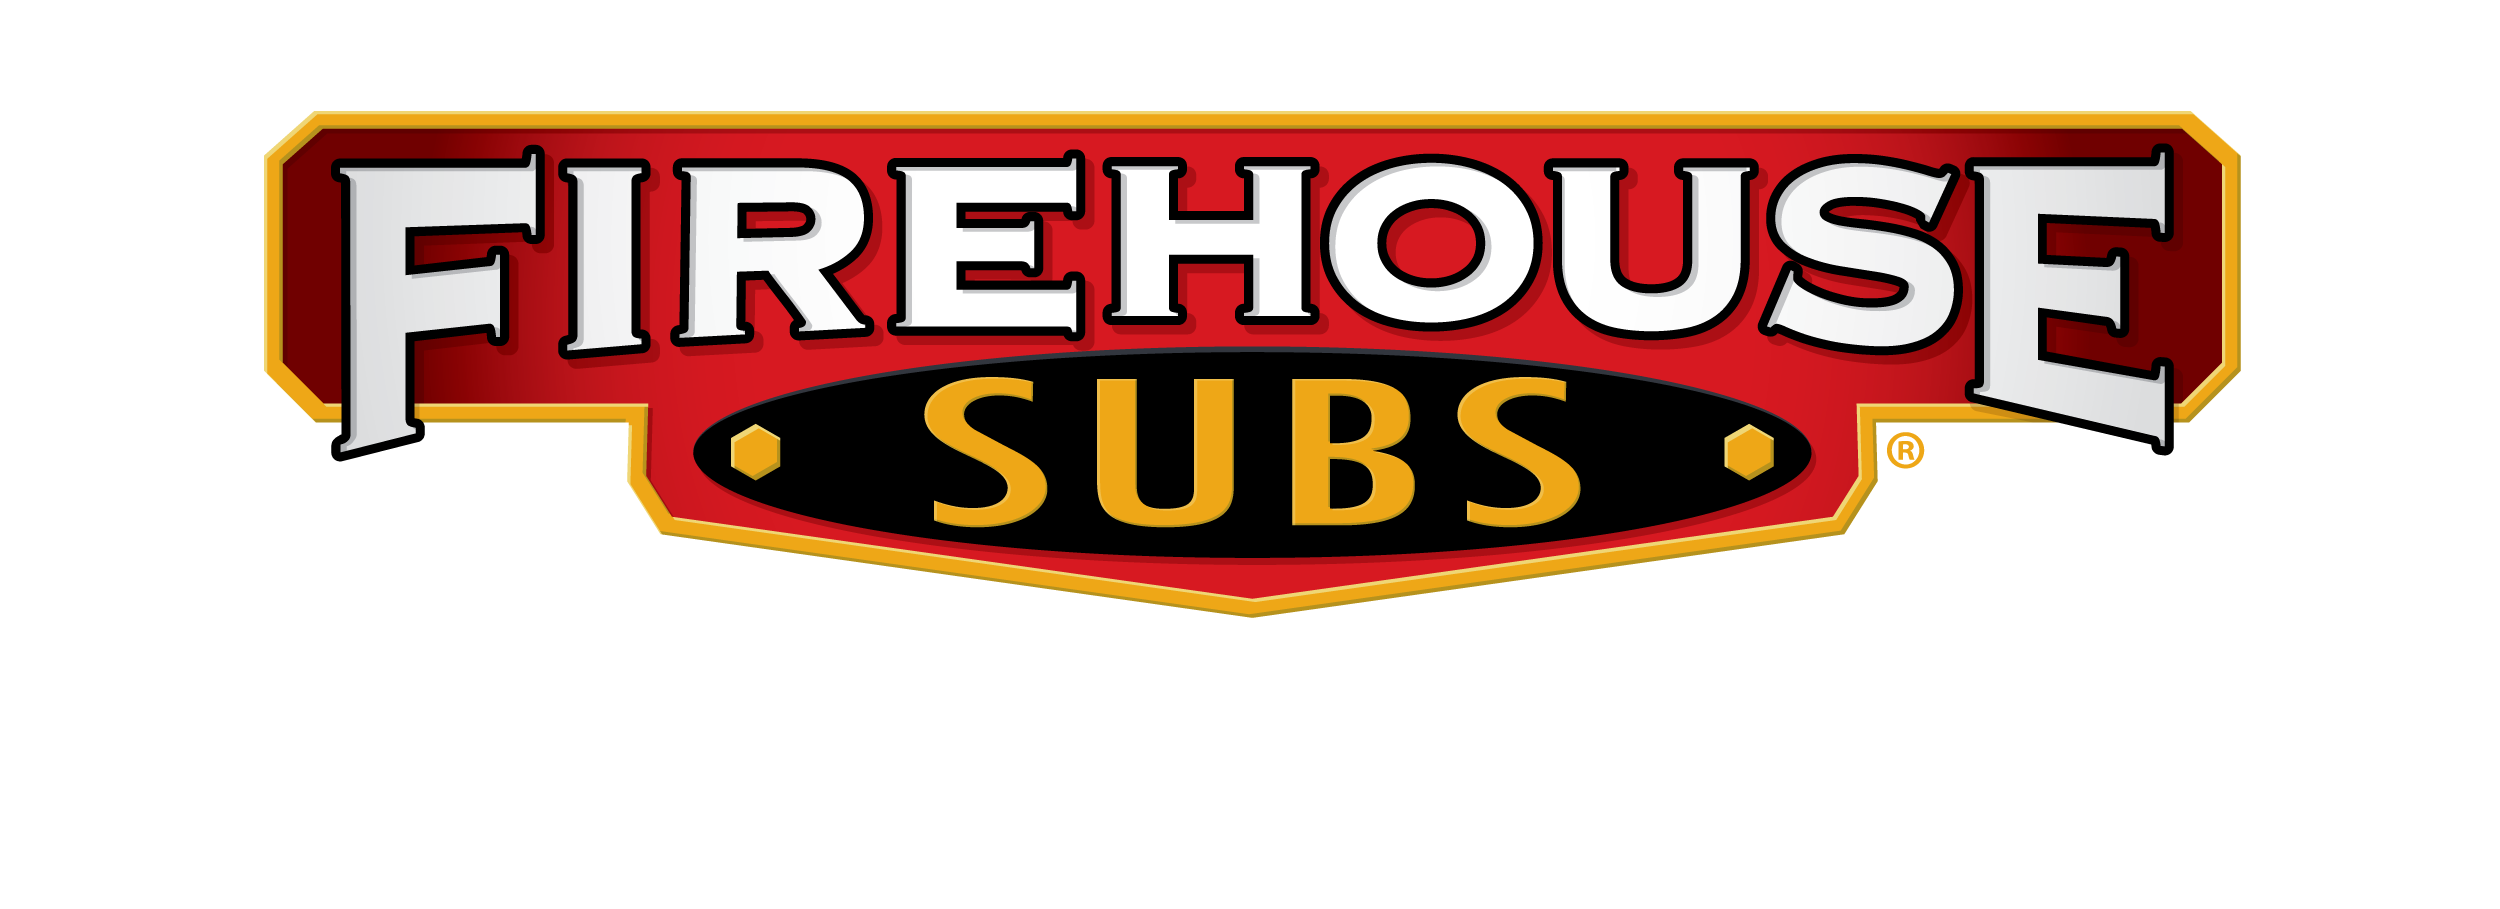 Firehouse Subs.png